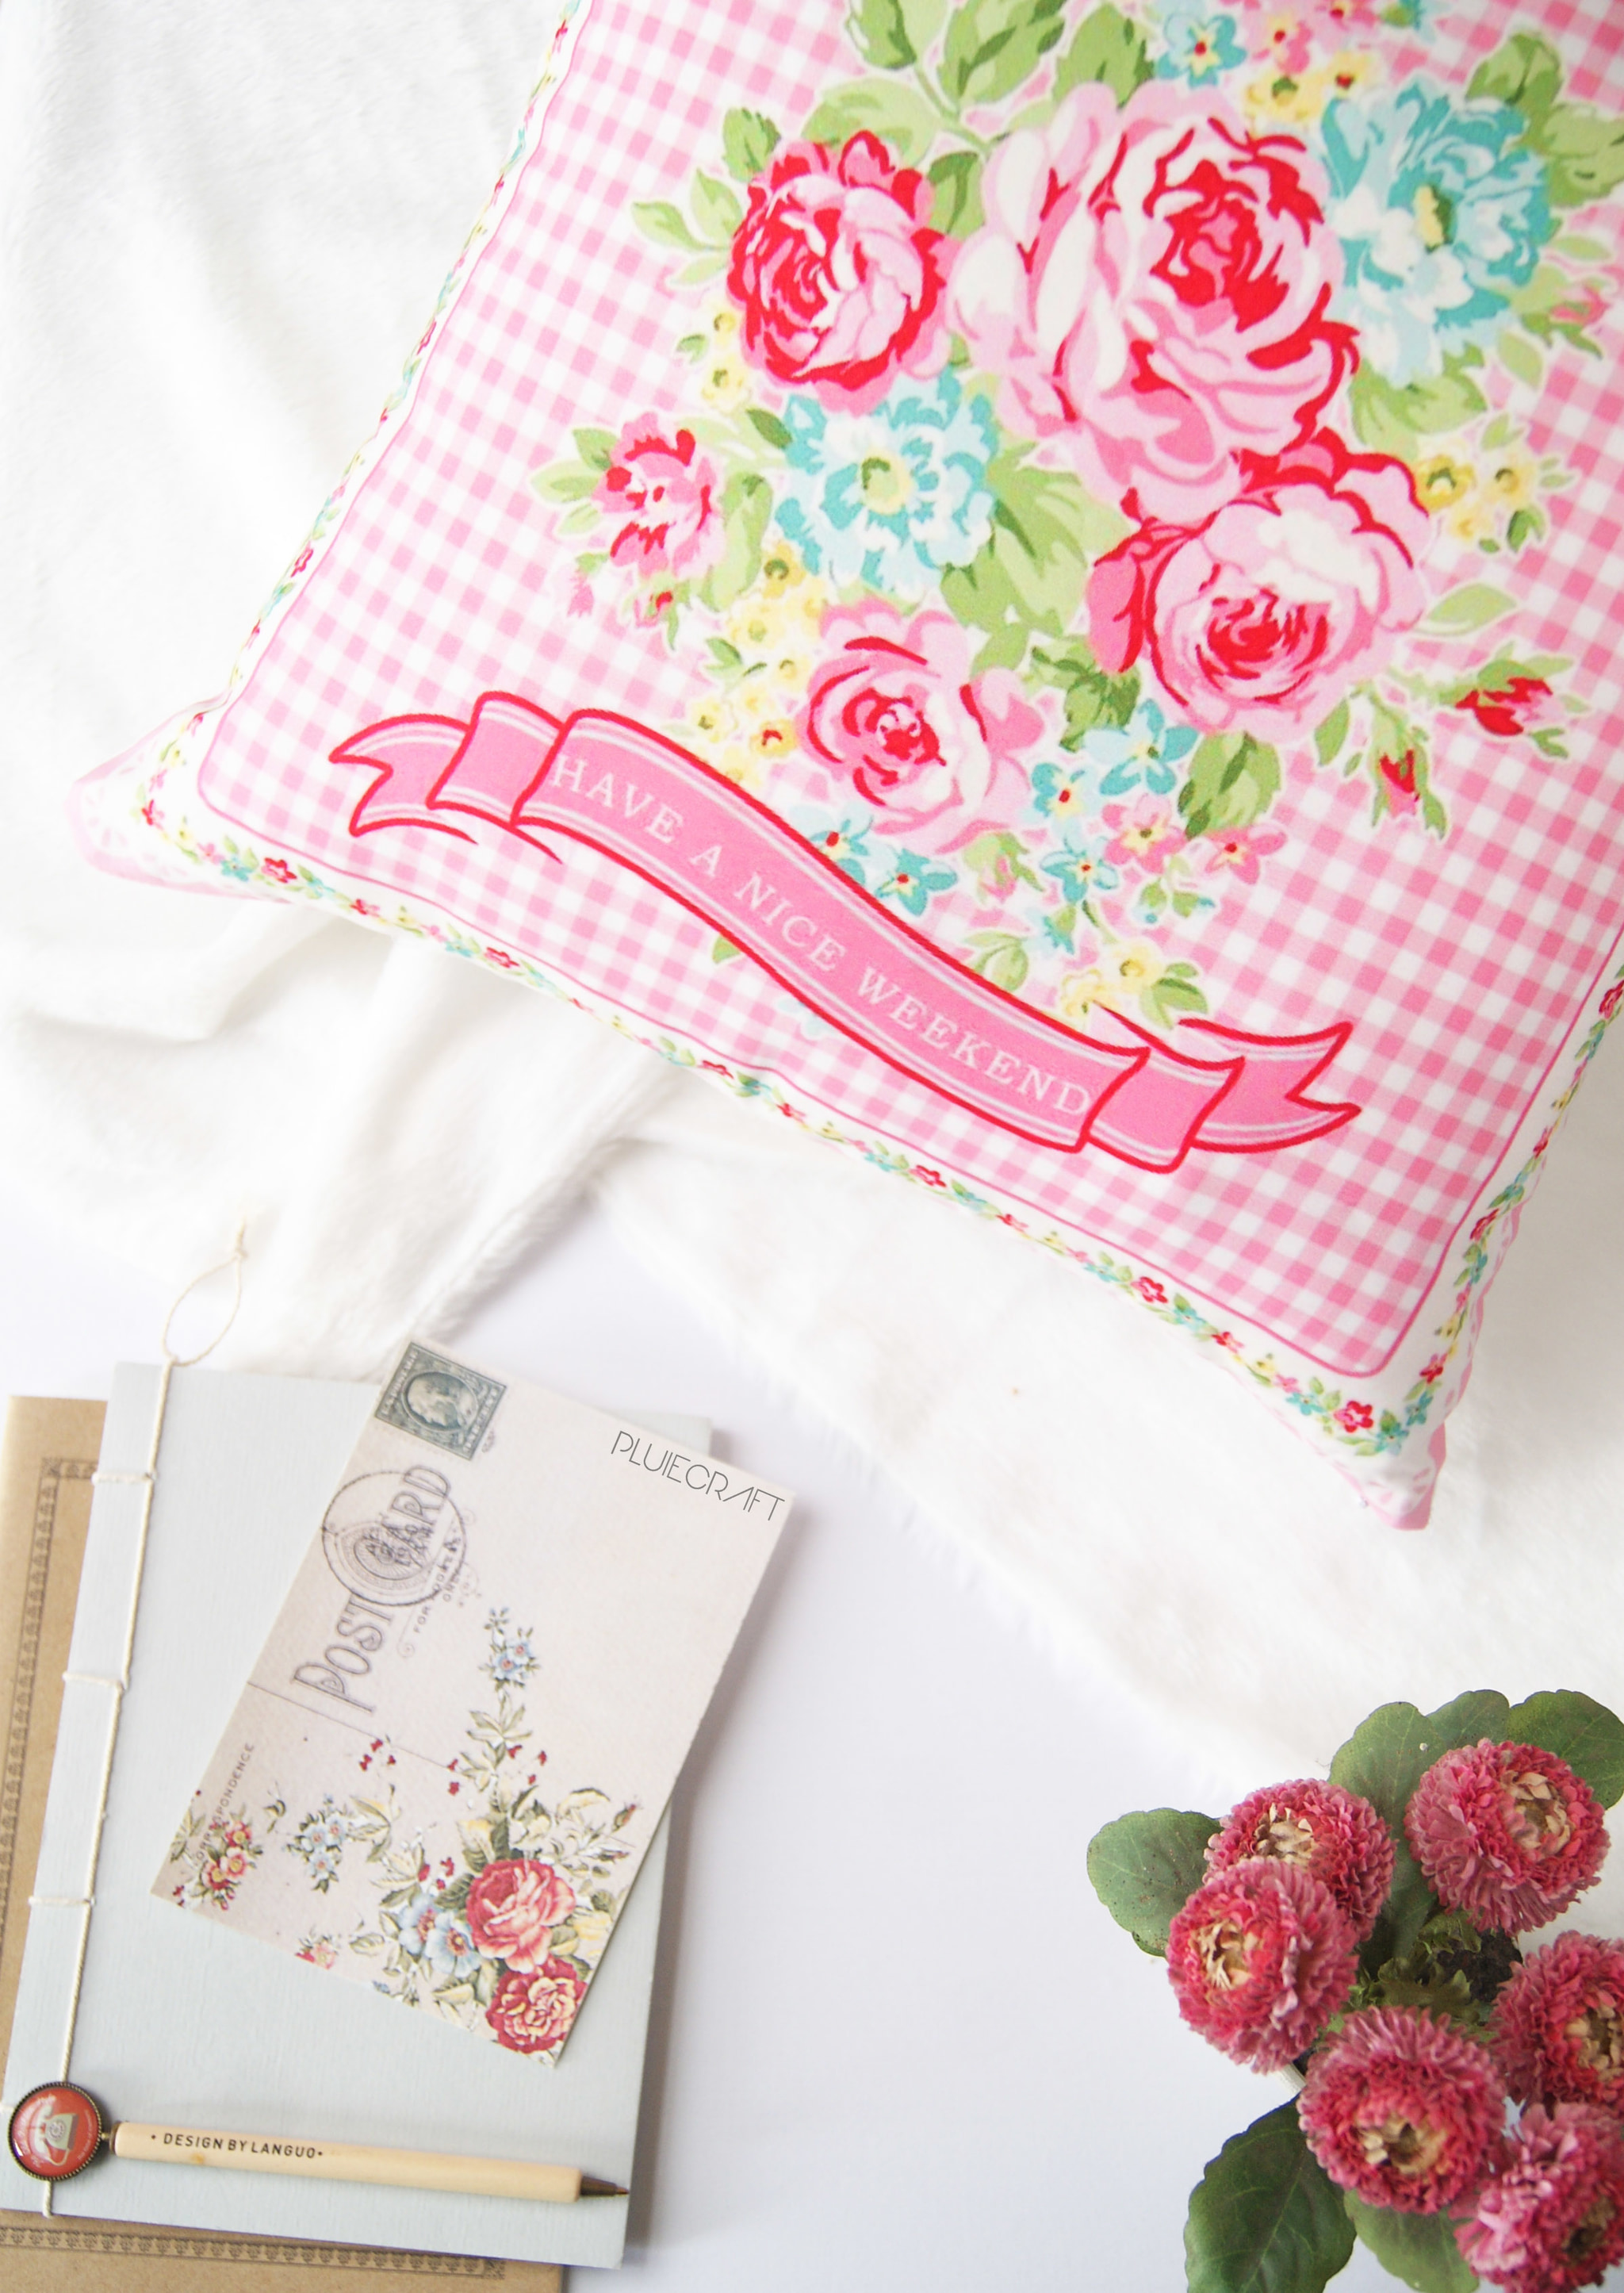 Bantal Bunga Printing Home Decor Shabby Chic Ruang Tamu